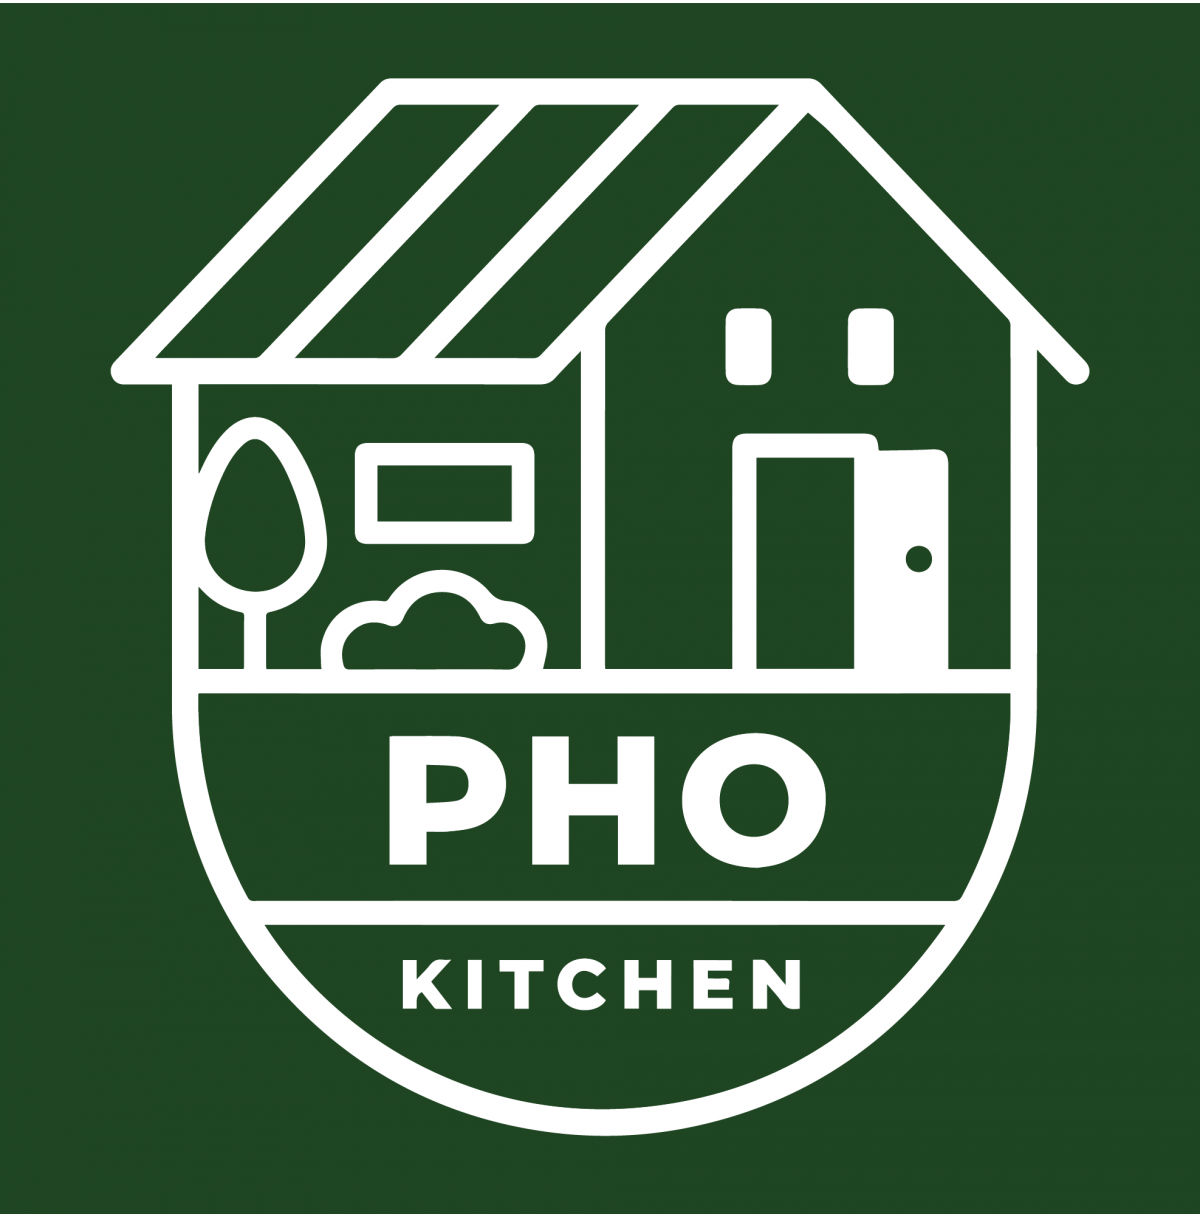 Pho Kitchen